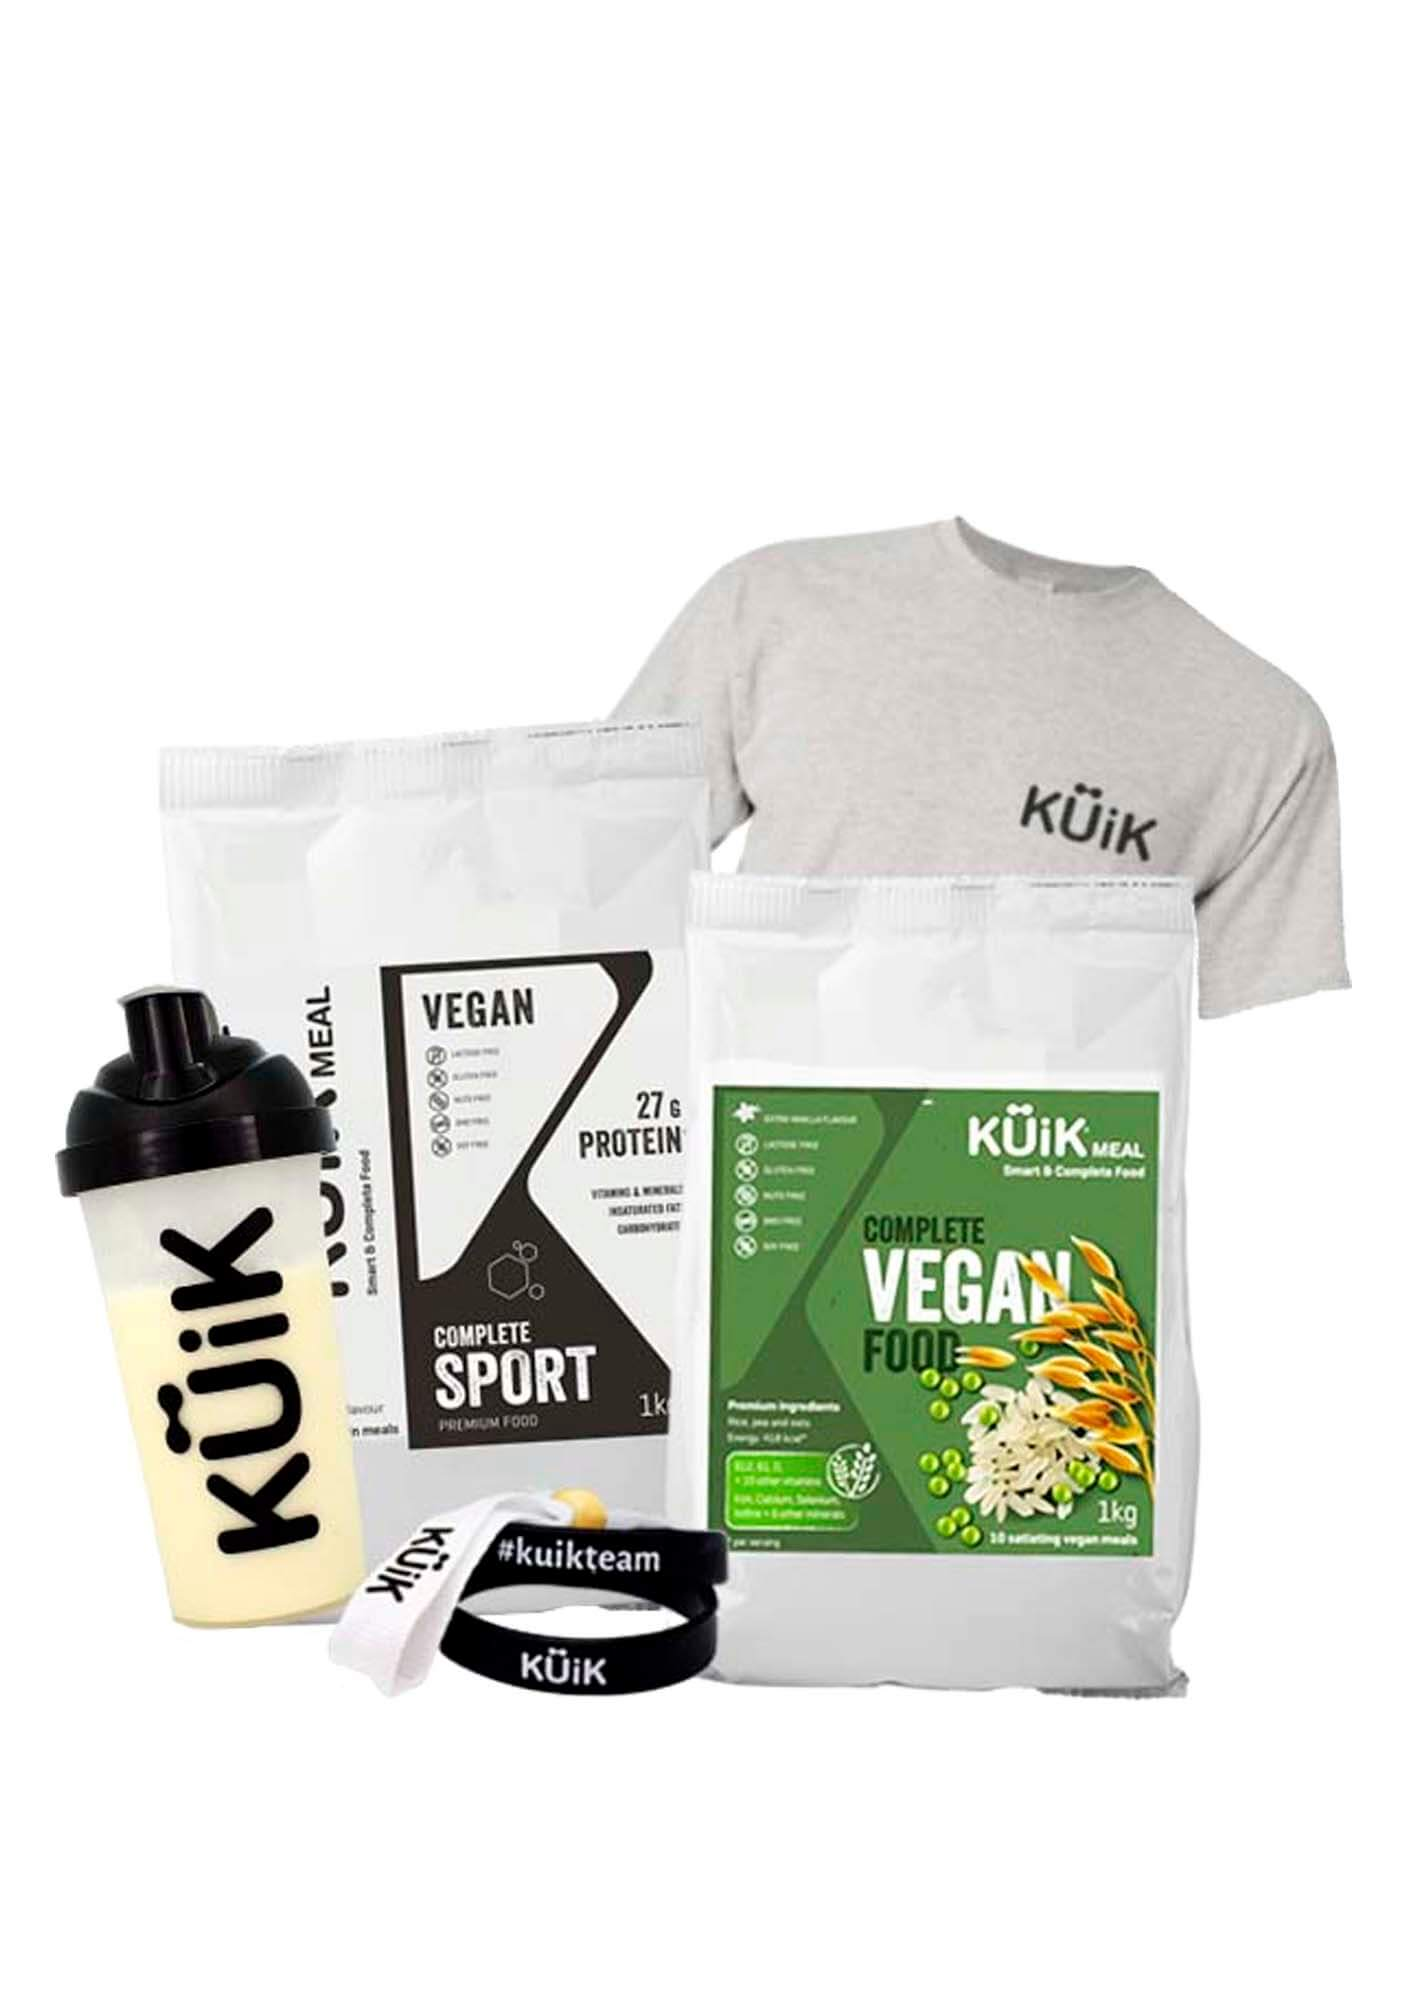 Pack Kuik Meal Vegan Complete meal replacement